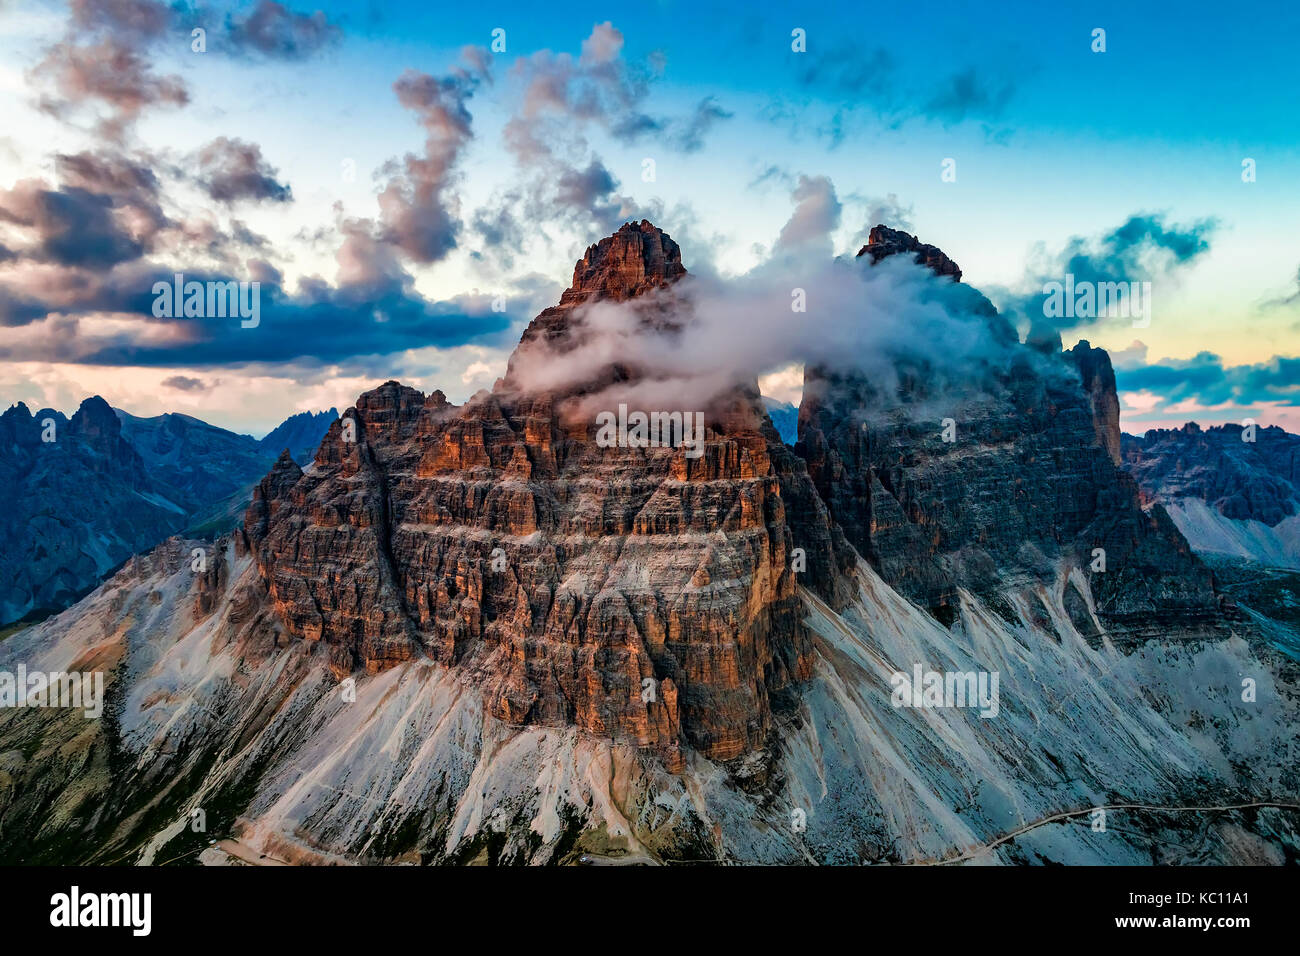 Parc naturel national tre cime, dans les dolomites alpes. belle nature de l'Italie. Photo Stock